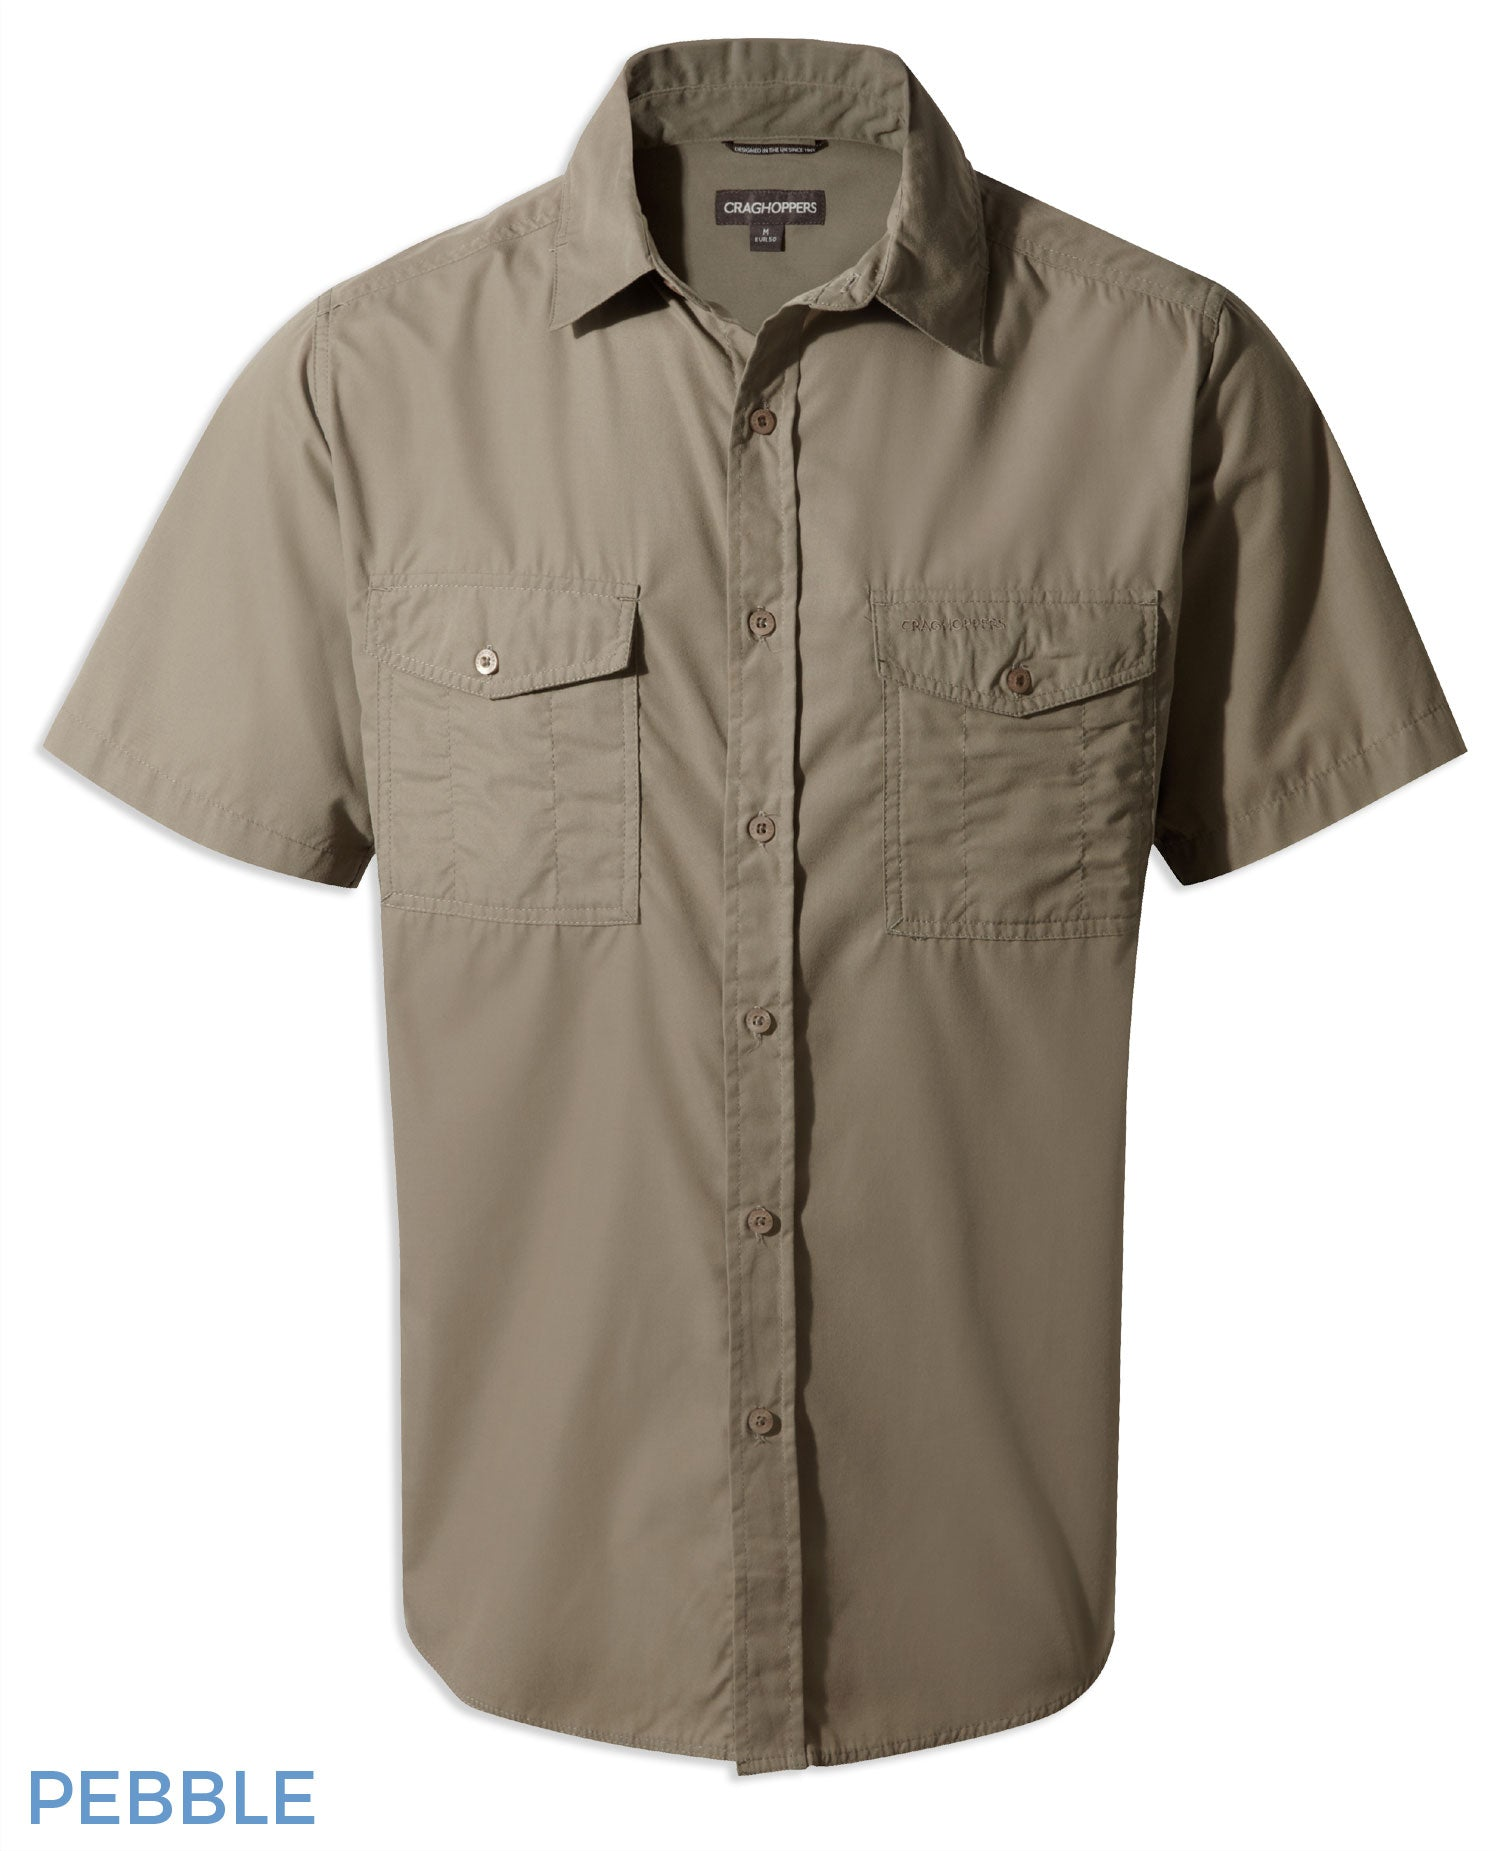 Craghoppers Kiwi Short Sleeved Shirt - Pebble